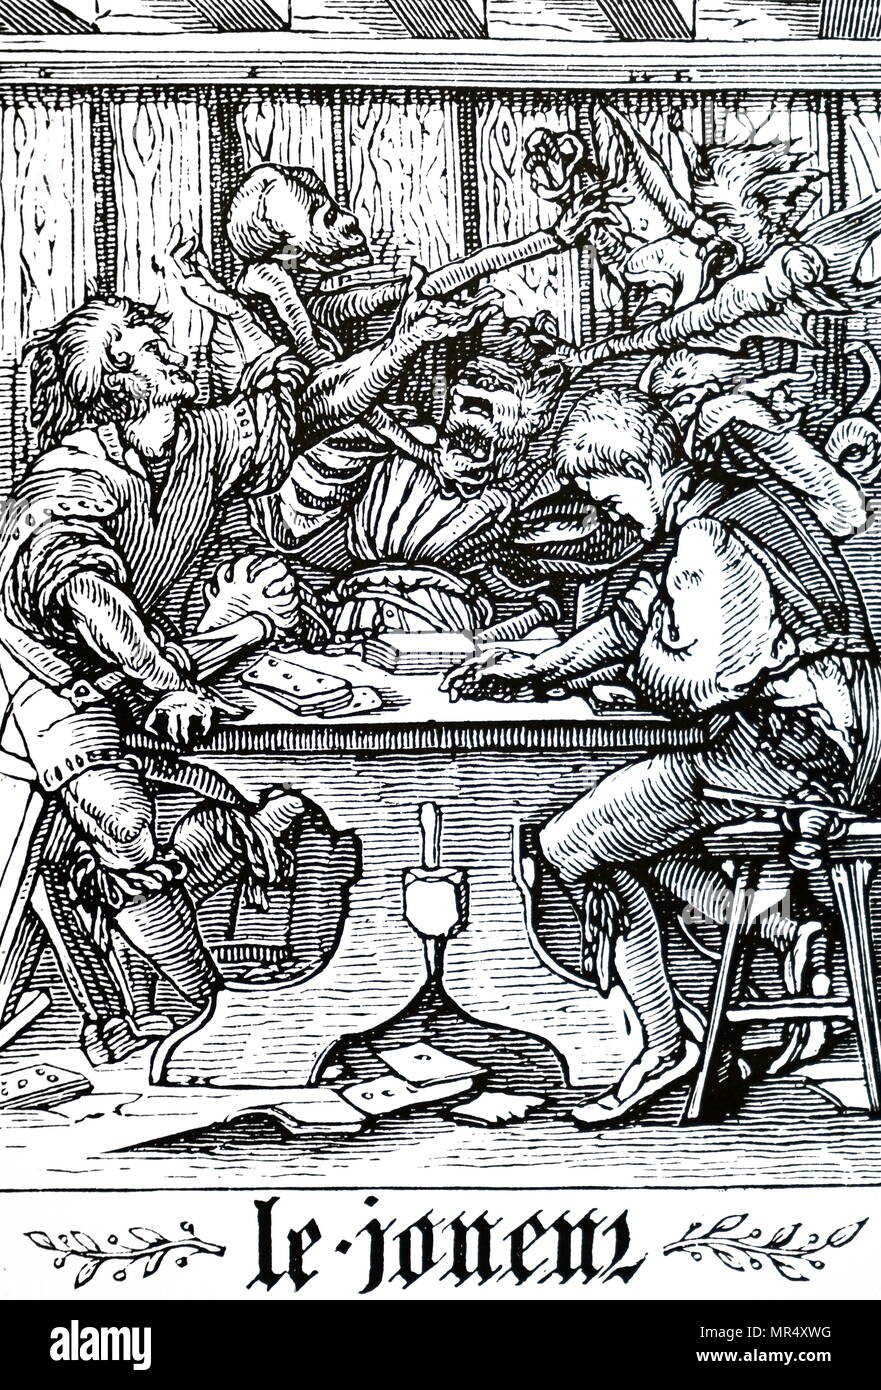 Engraving depicting 'The Gambler' being visited by Death. Dated 16th century - Stock Image